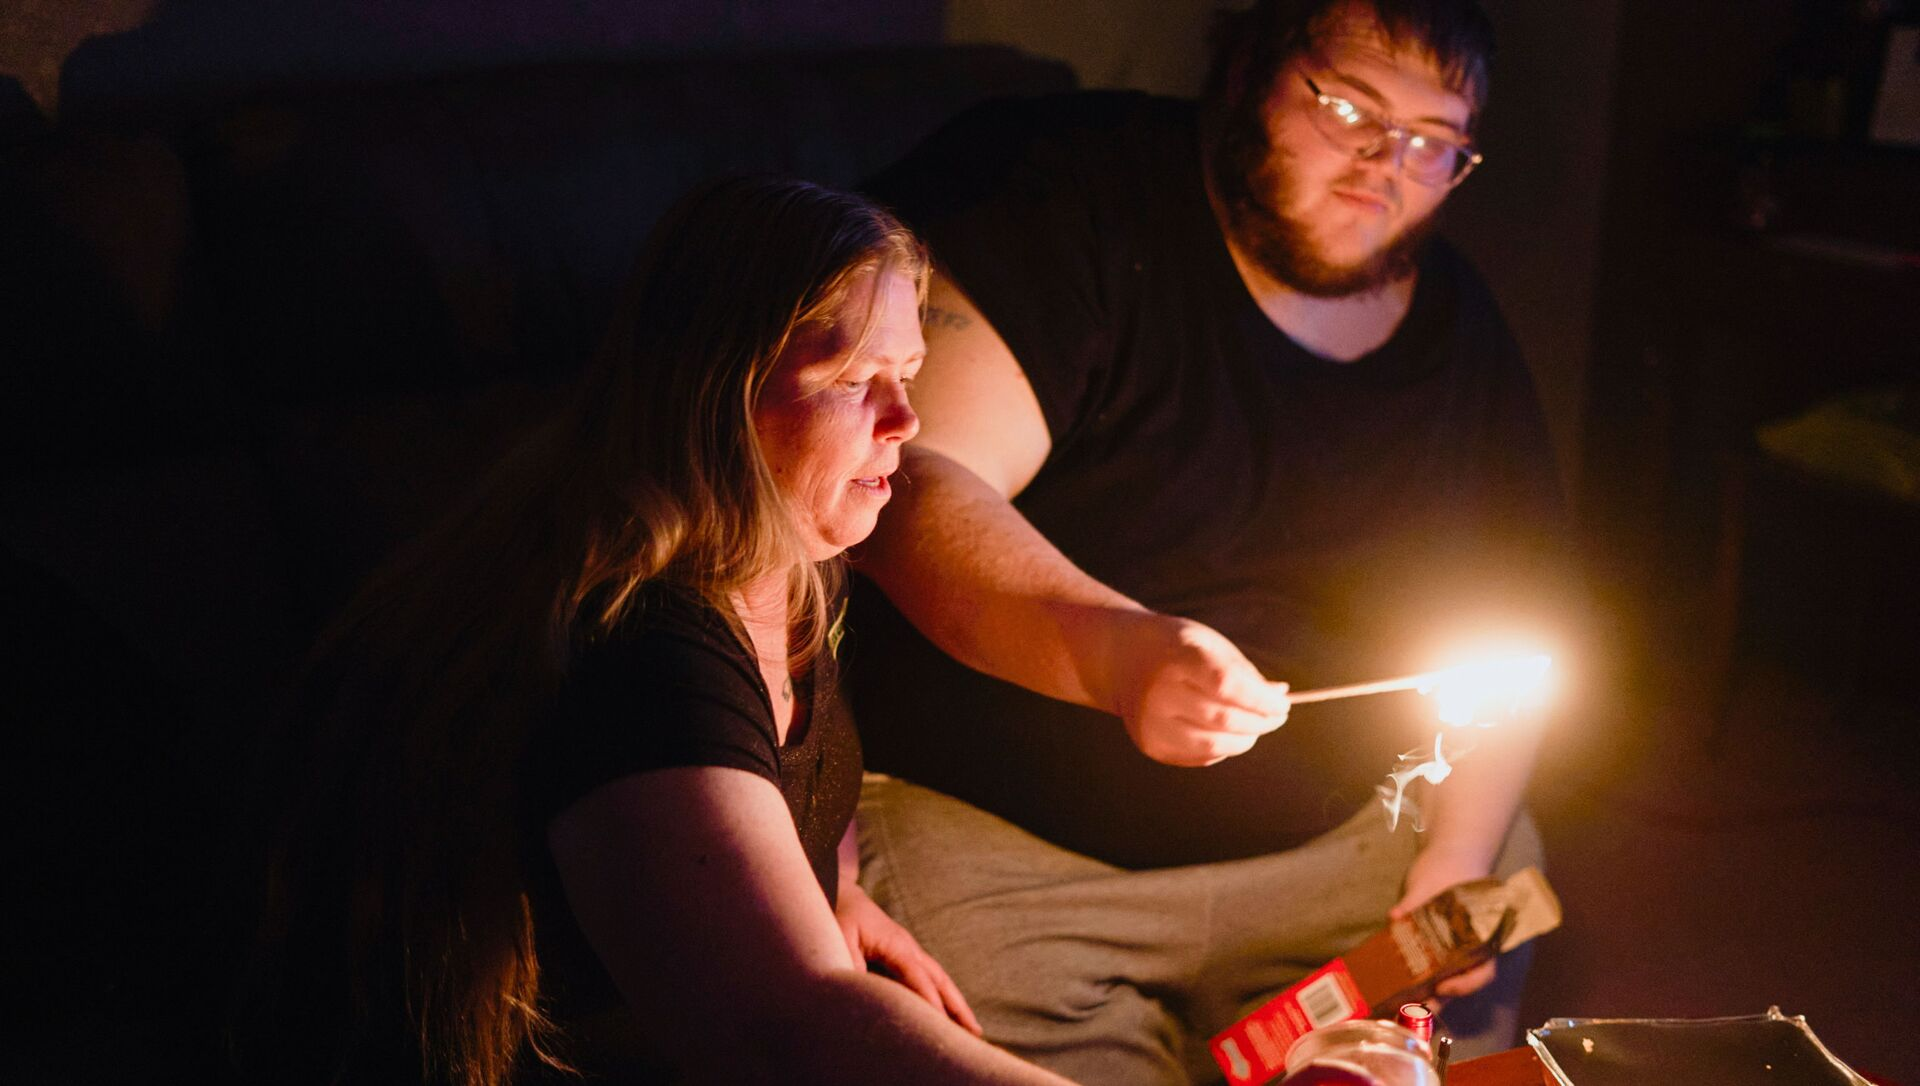 Christina Beverly and John Shearon light candles in their home after winter weather caused electricity blackouts and boil water notices in Fort Worth, Texas, U.S. February 20, 2021. - Sputnik International, 1920, 29.07.2021